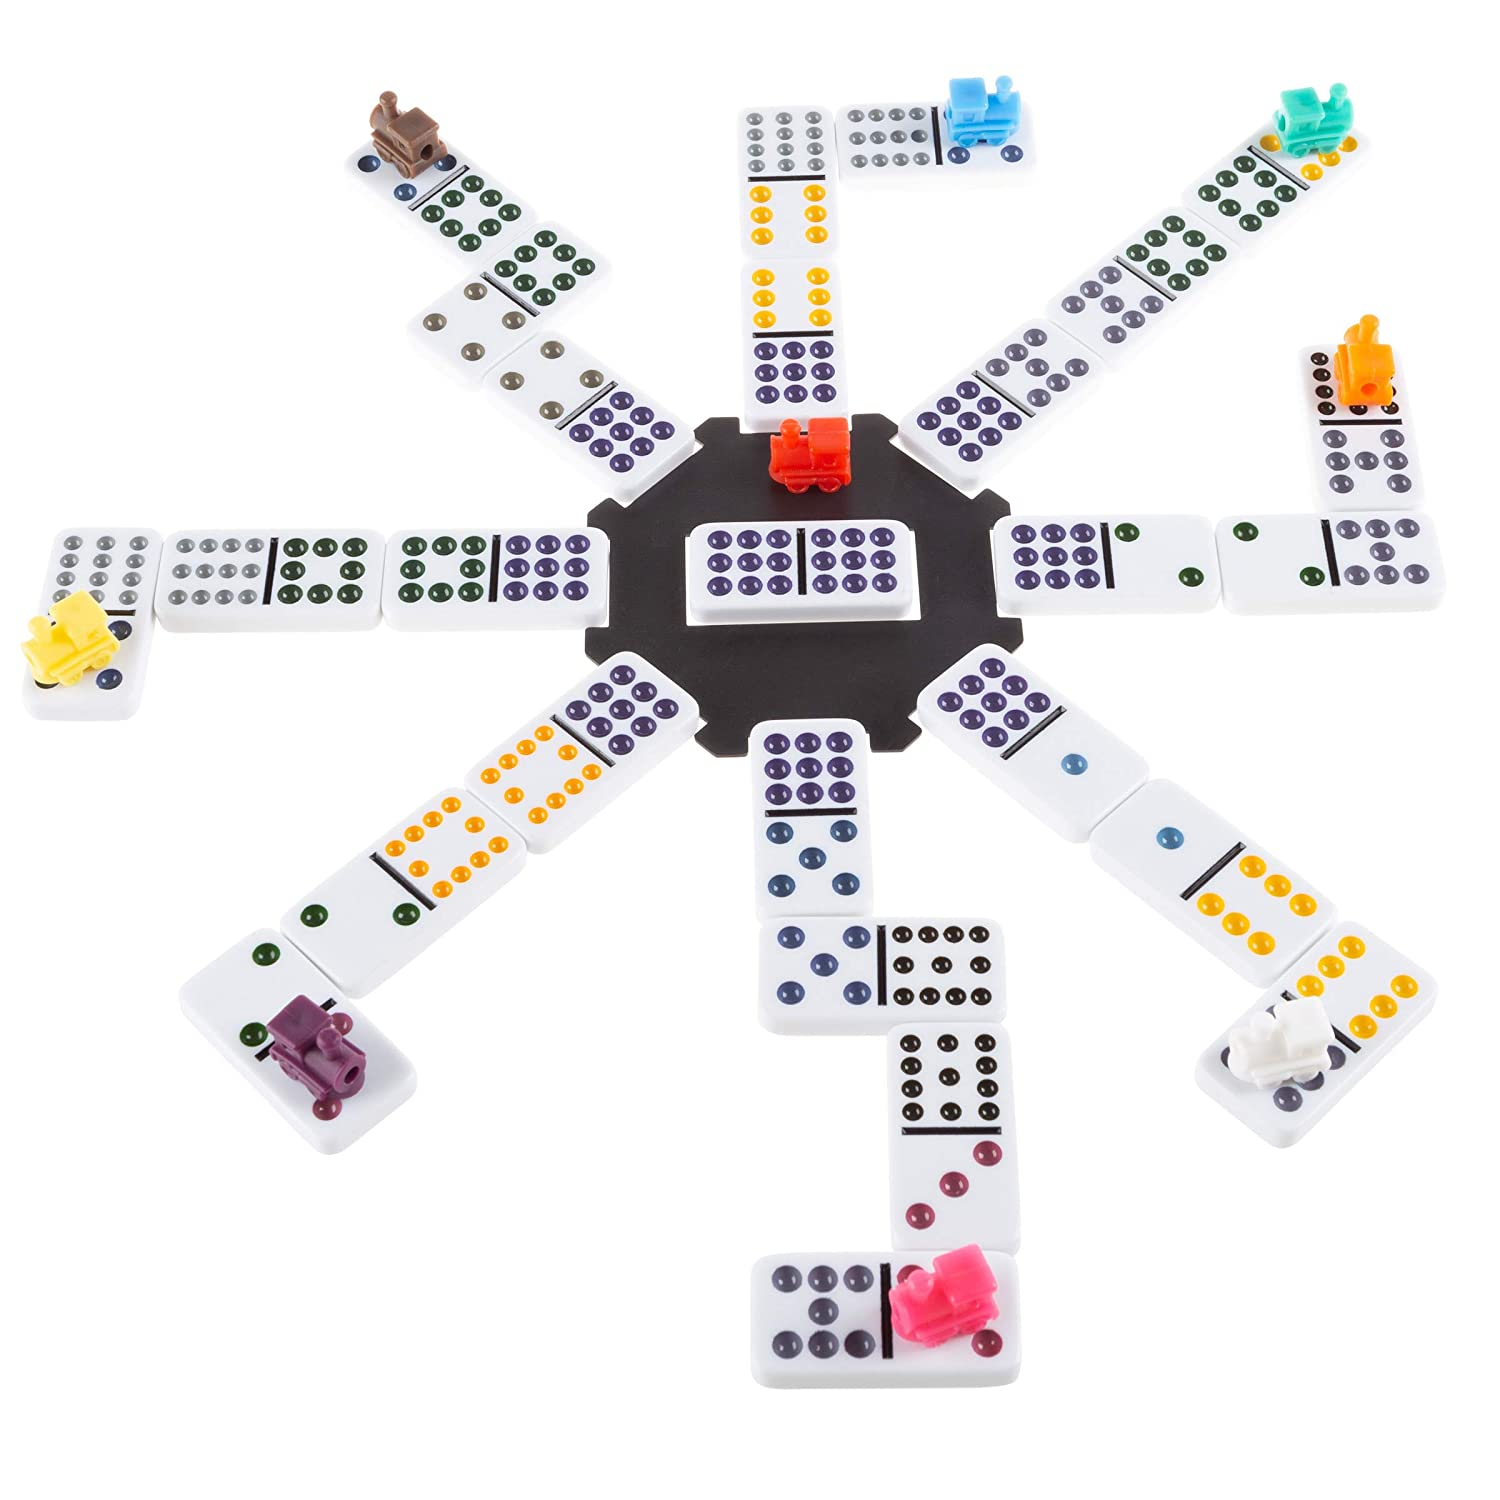 Mexican Dominos – Train Style Set with 91 Colorful Tiles in Suits 0-12 with 9 Plastic Trains & A Center Hub – Fun Classic Family Game by Hey! Play!